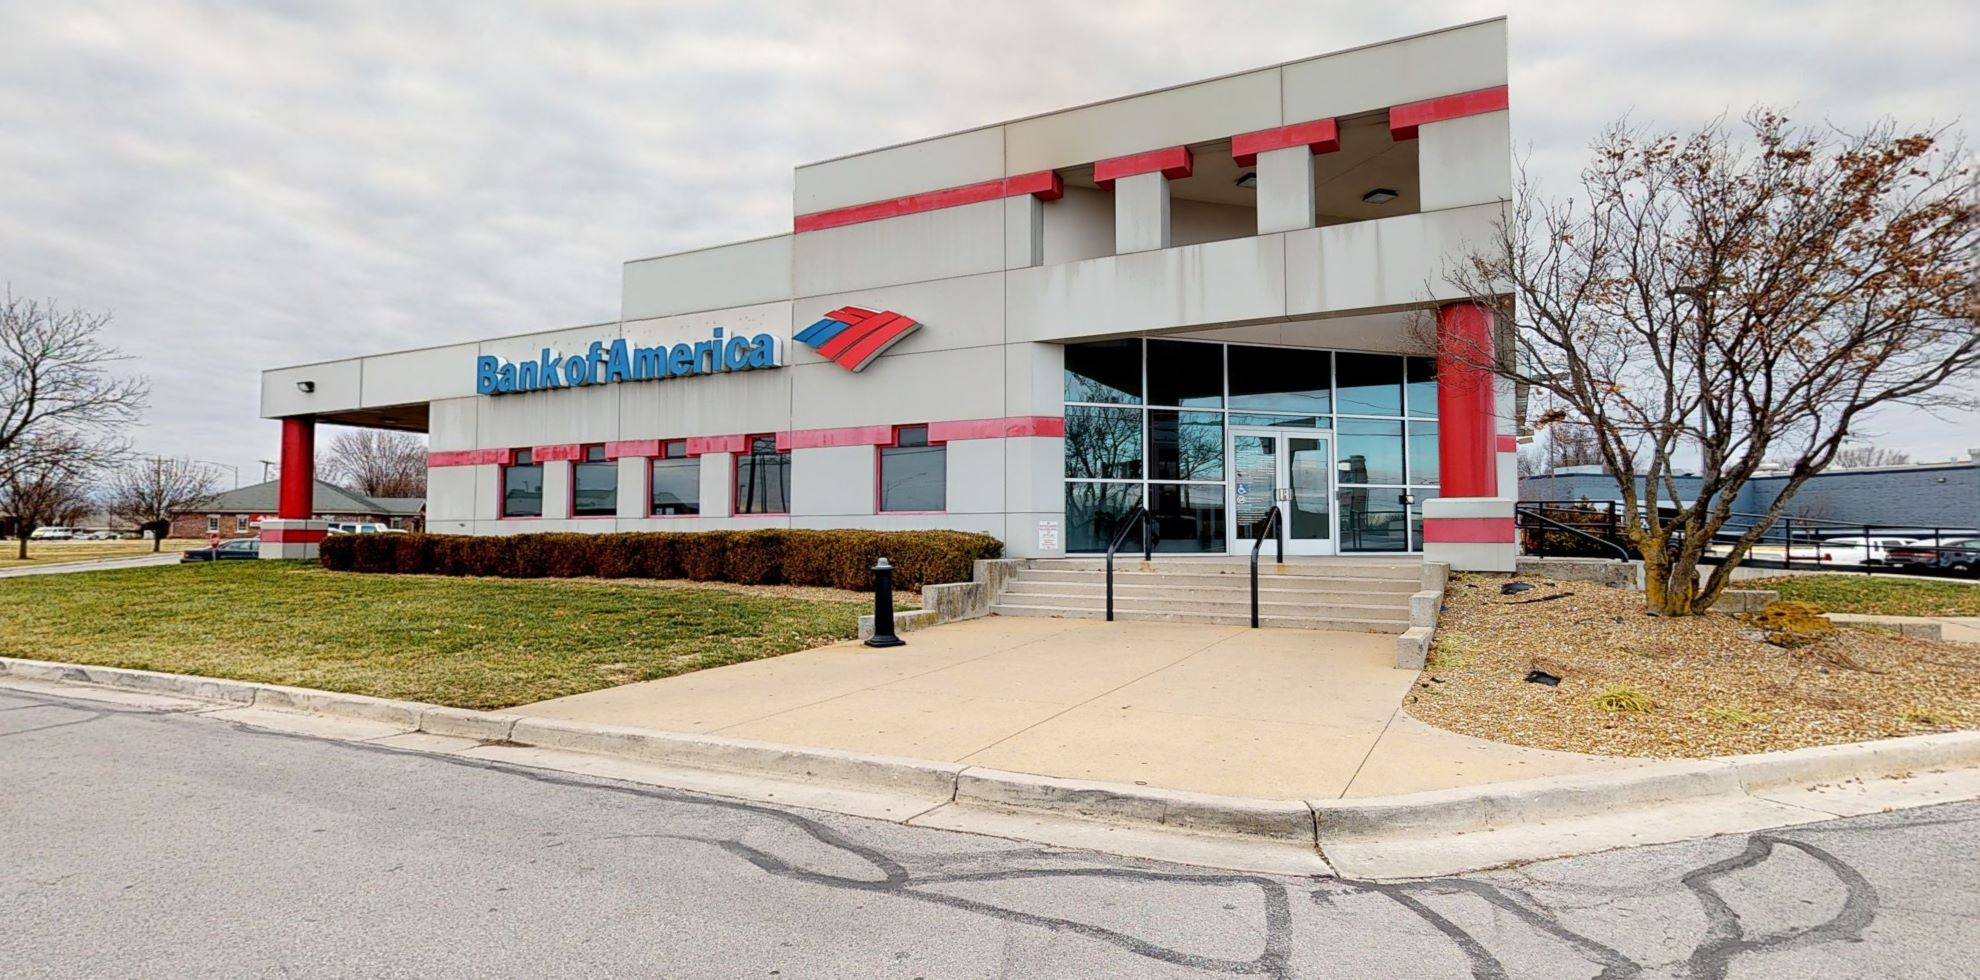 Bank of America financial center with drive-thru ATM | 4141 S Campbell Ave, Springfield, MO 65807